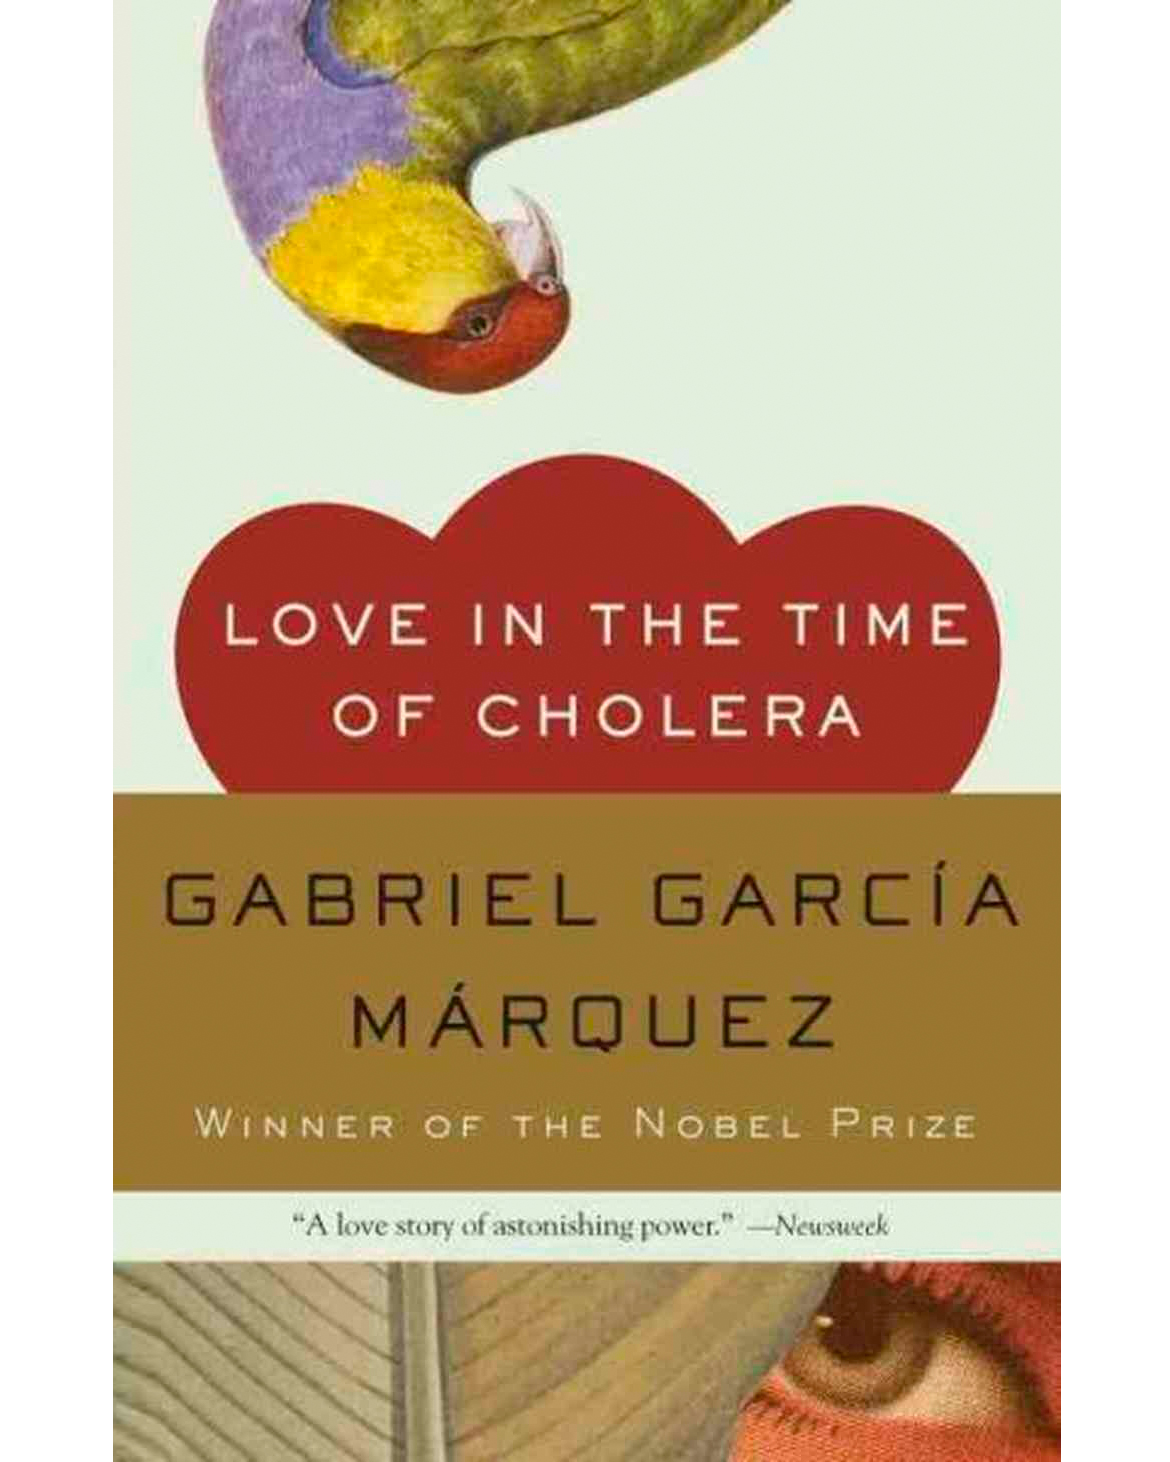 books-read-before-marriage-love-time-cholera-marquez-0115.jpg